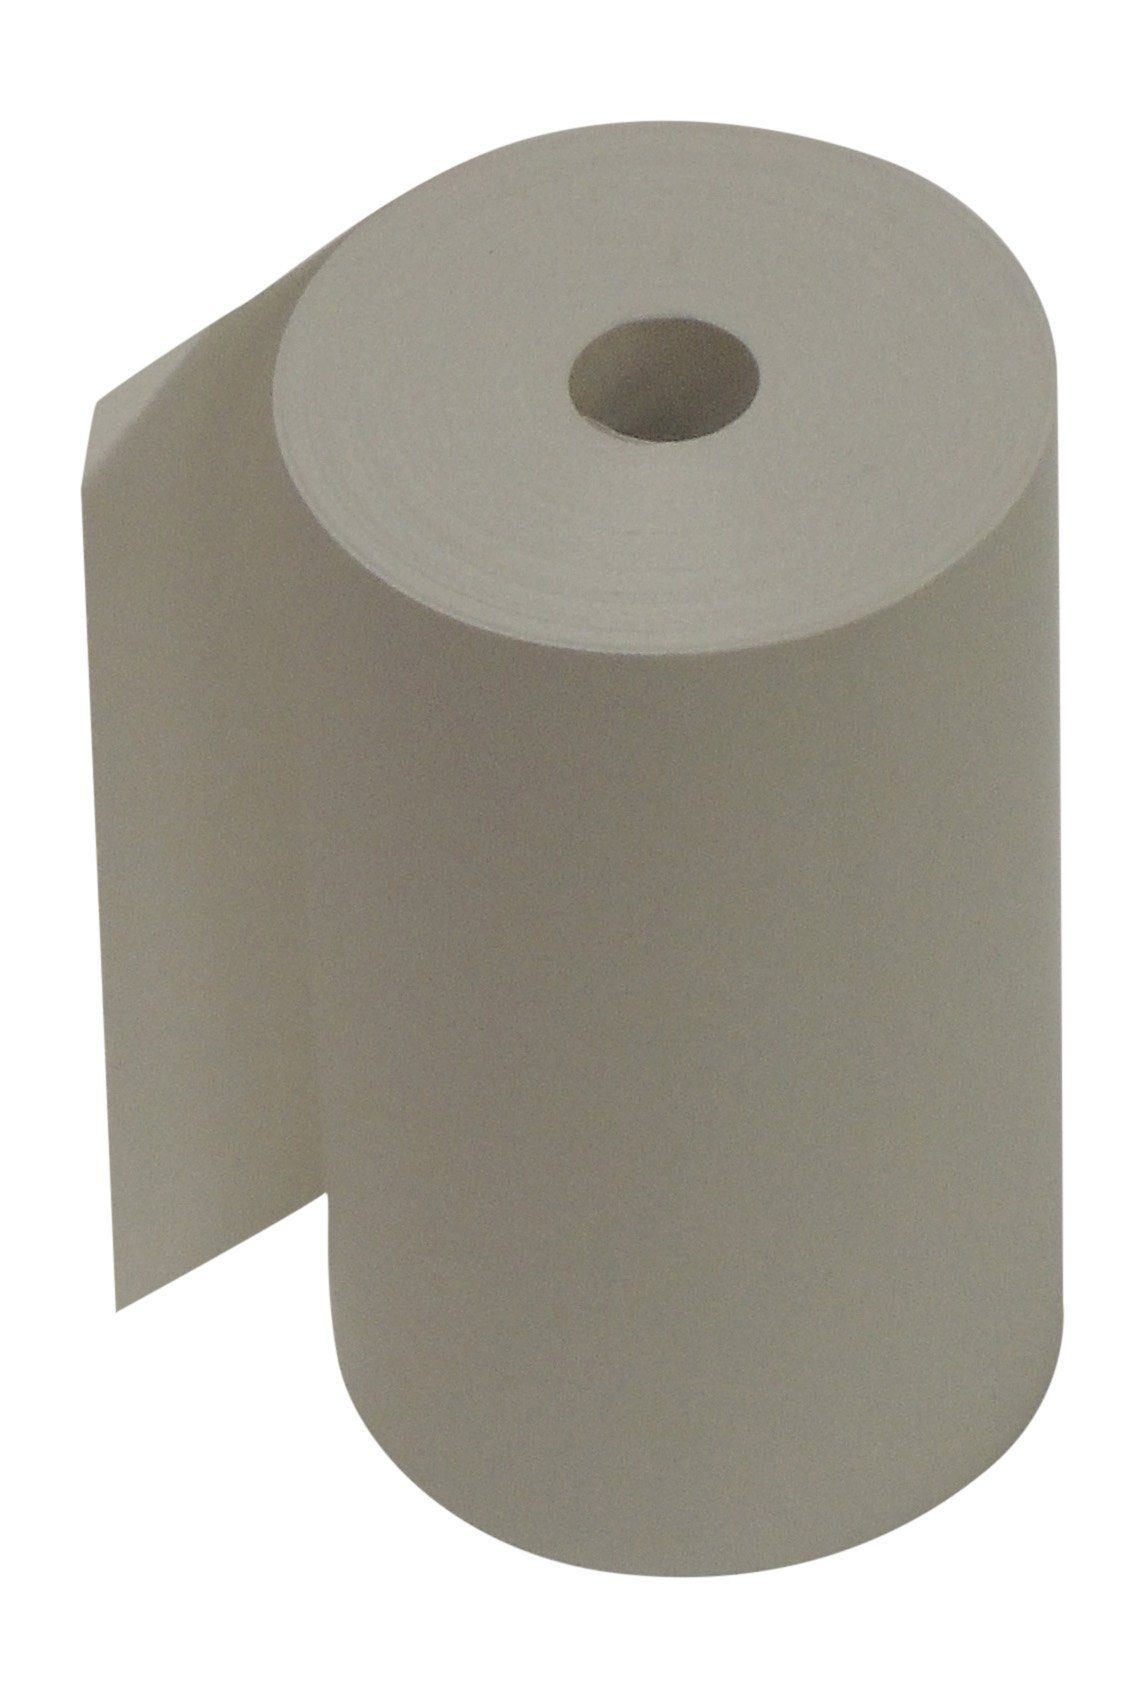 Thermal Paper 2-1/4'' x 50 ft, 1.25'' / 30mm Diameter, CORELESS, BPA Free, 100 Rolls by POS1 (Image #2)